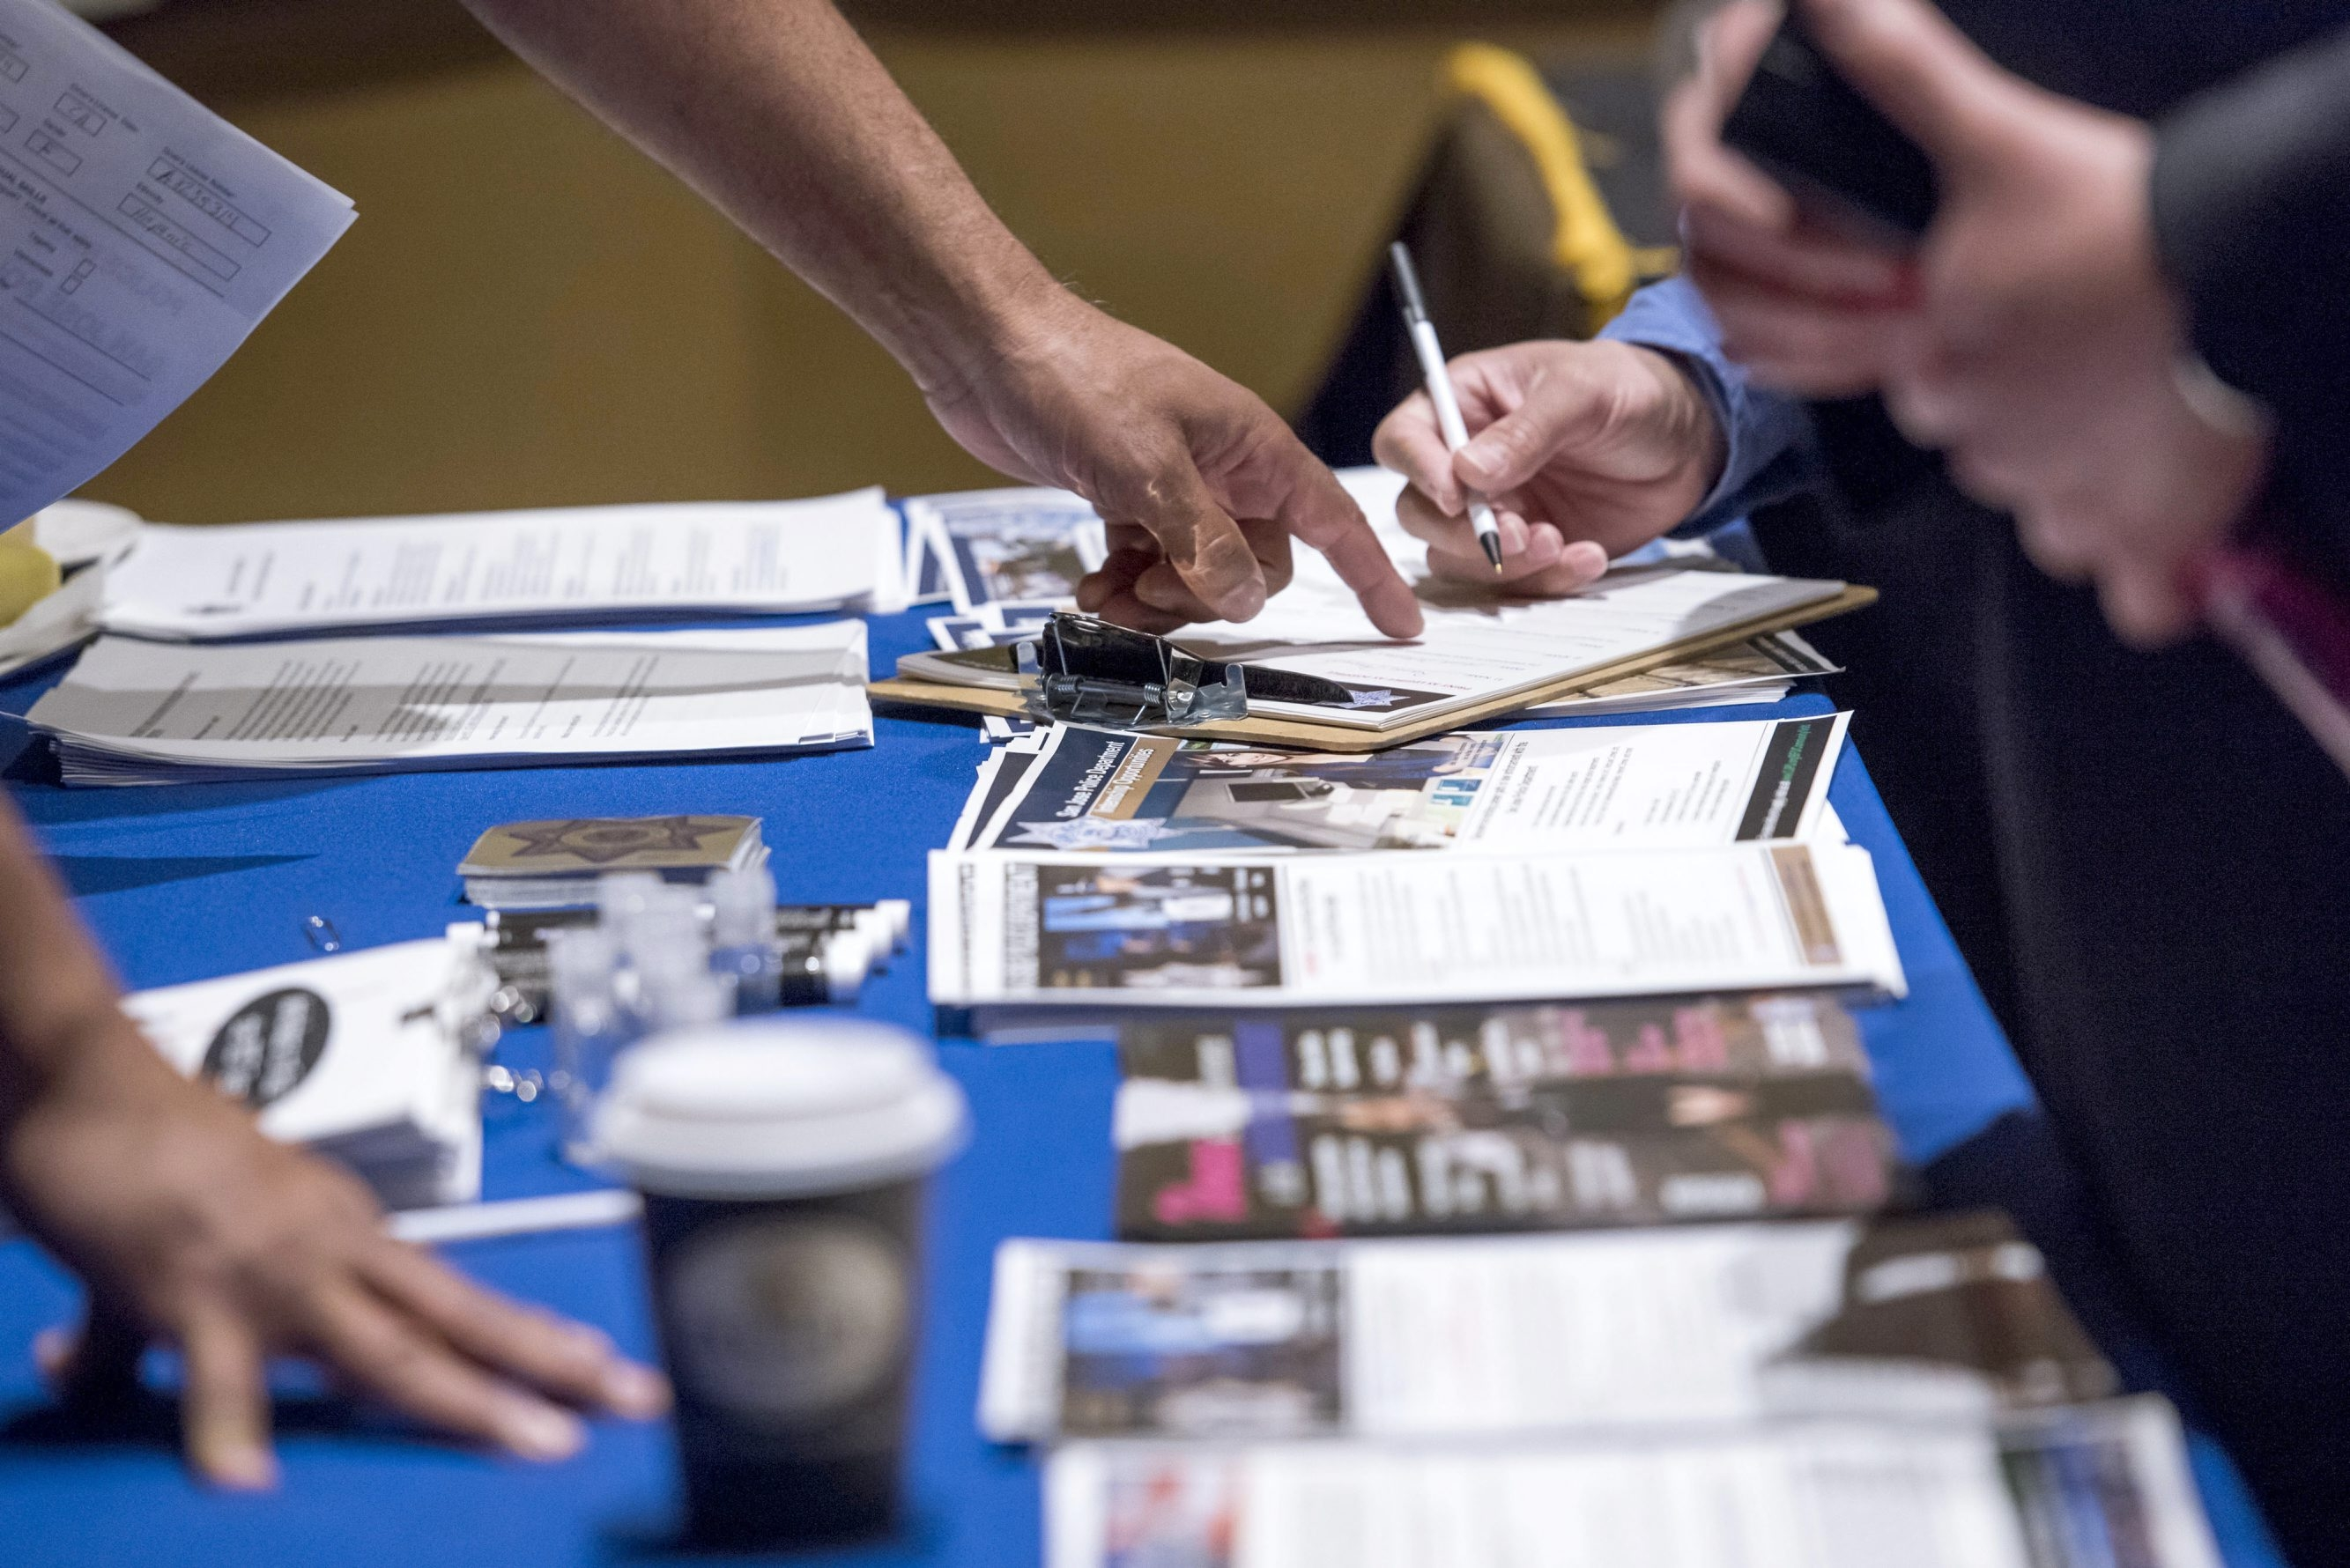 Local jobless rate falls to a nine-year low of 4.9 percent in July